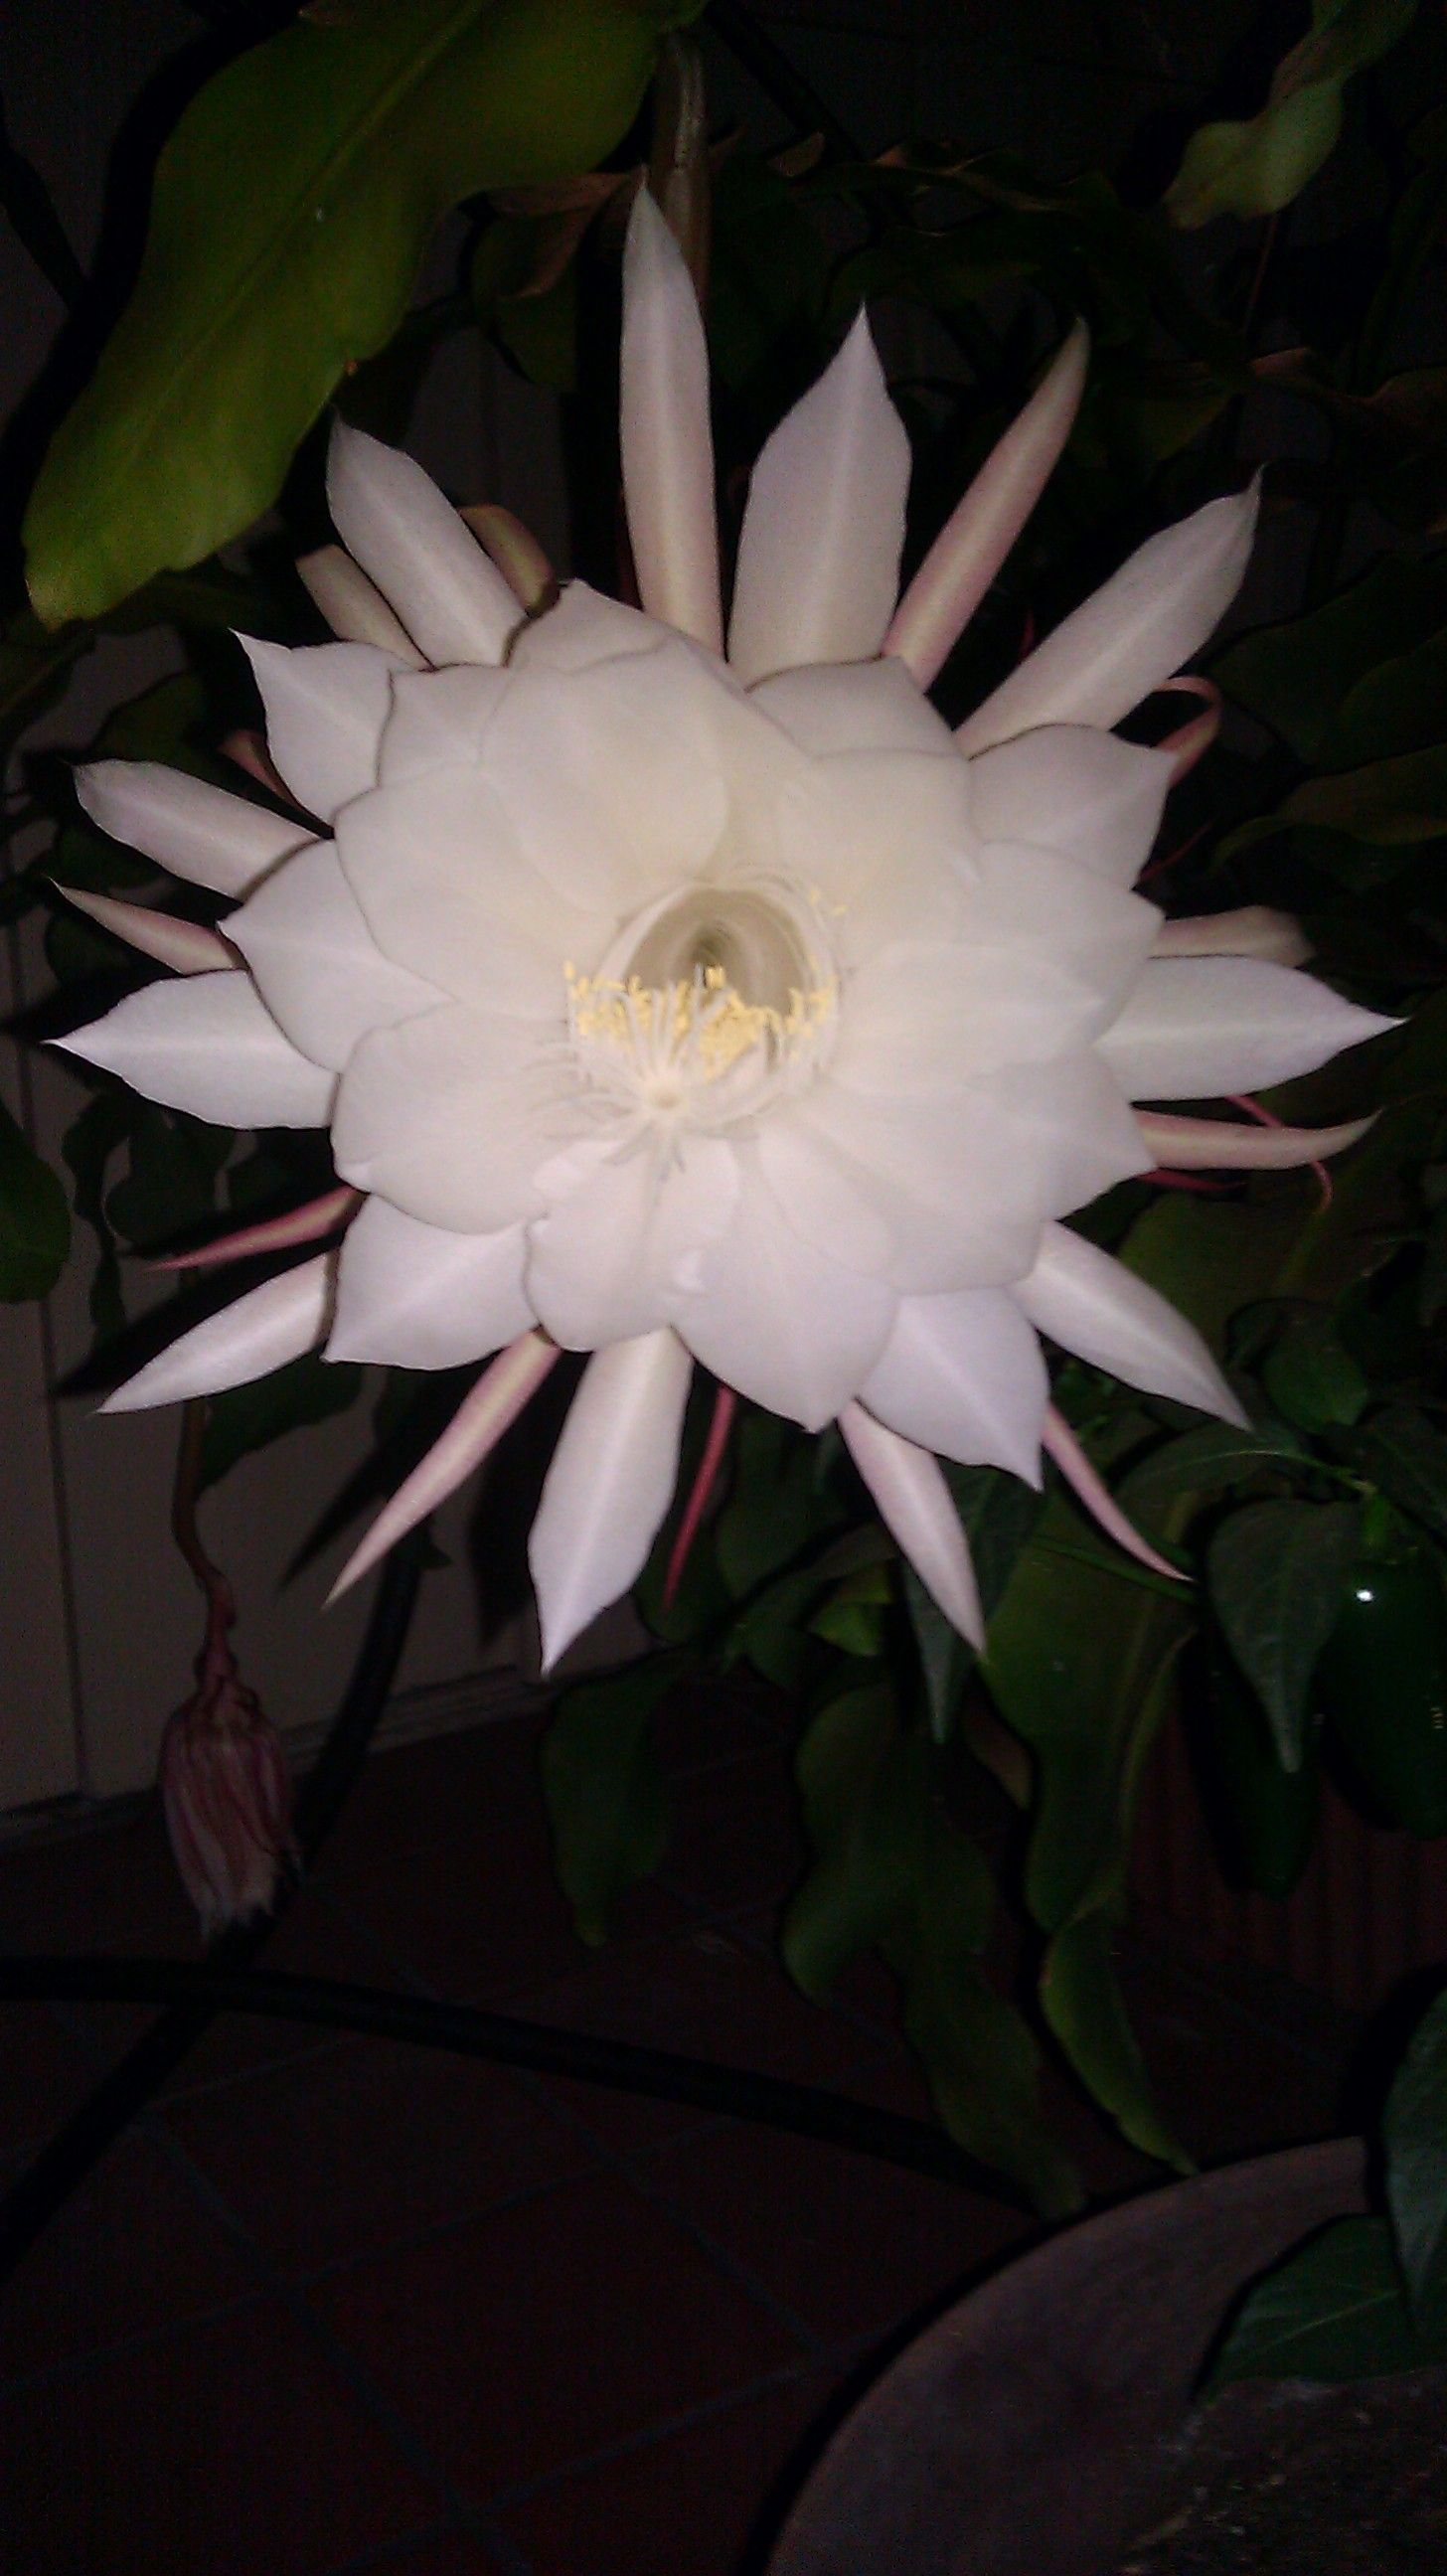 Night Blooming Cerius Blooms Once Around 10 Pm And The Flower Is